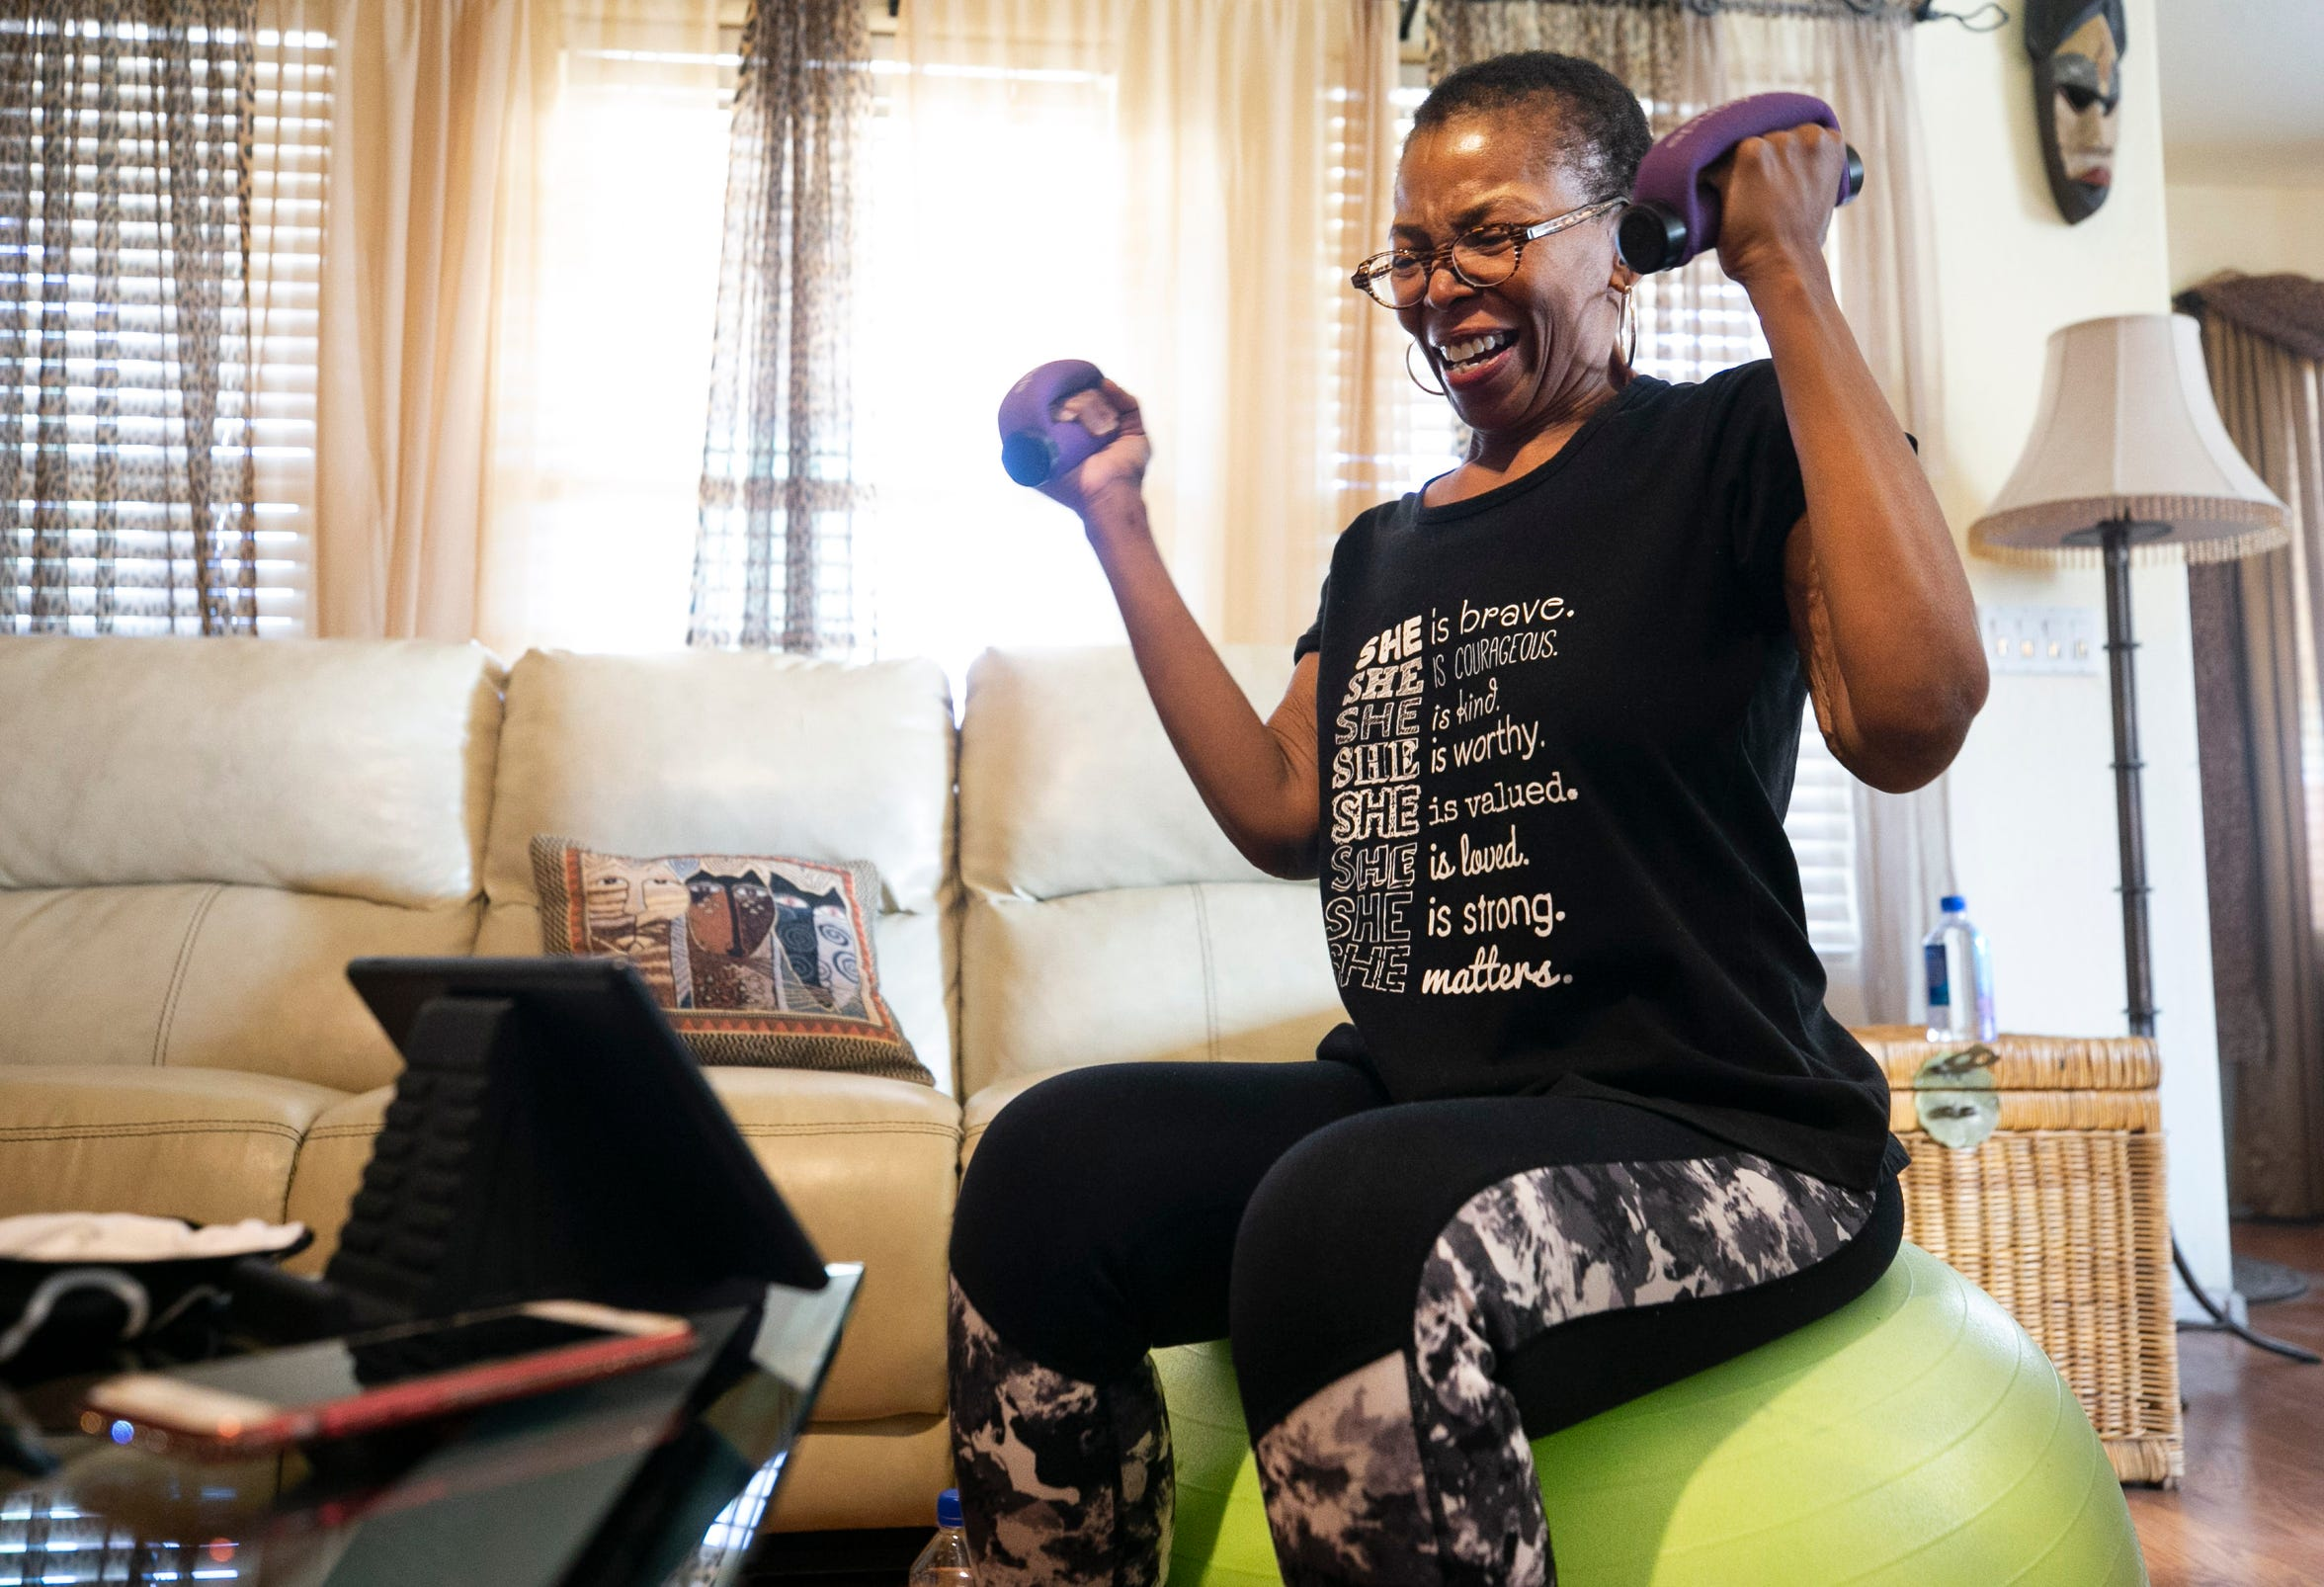 Oneka Temple, 50, of Laveen, does a personal training session through Zoom with Brielle Carter, program manager at Ability360, a Phoenix fitness and community center for people with disabilities, at her home in Laveen on Sept. 24, 2020.